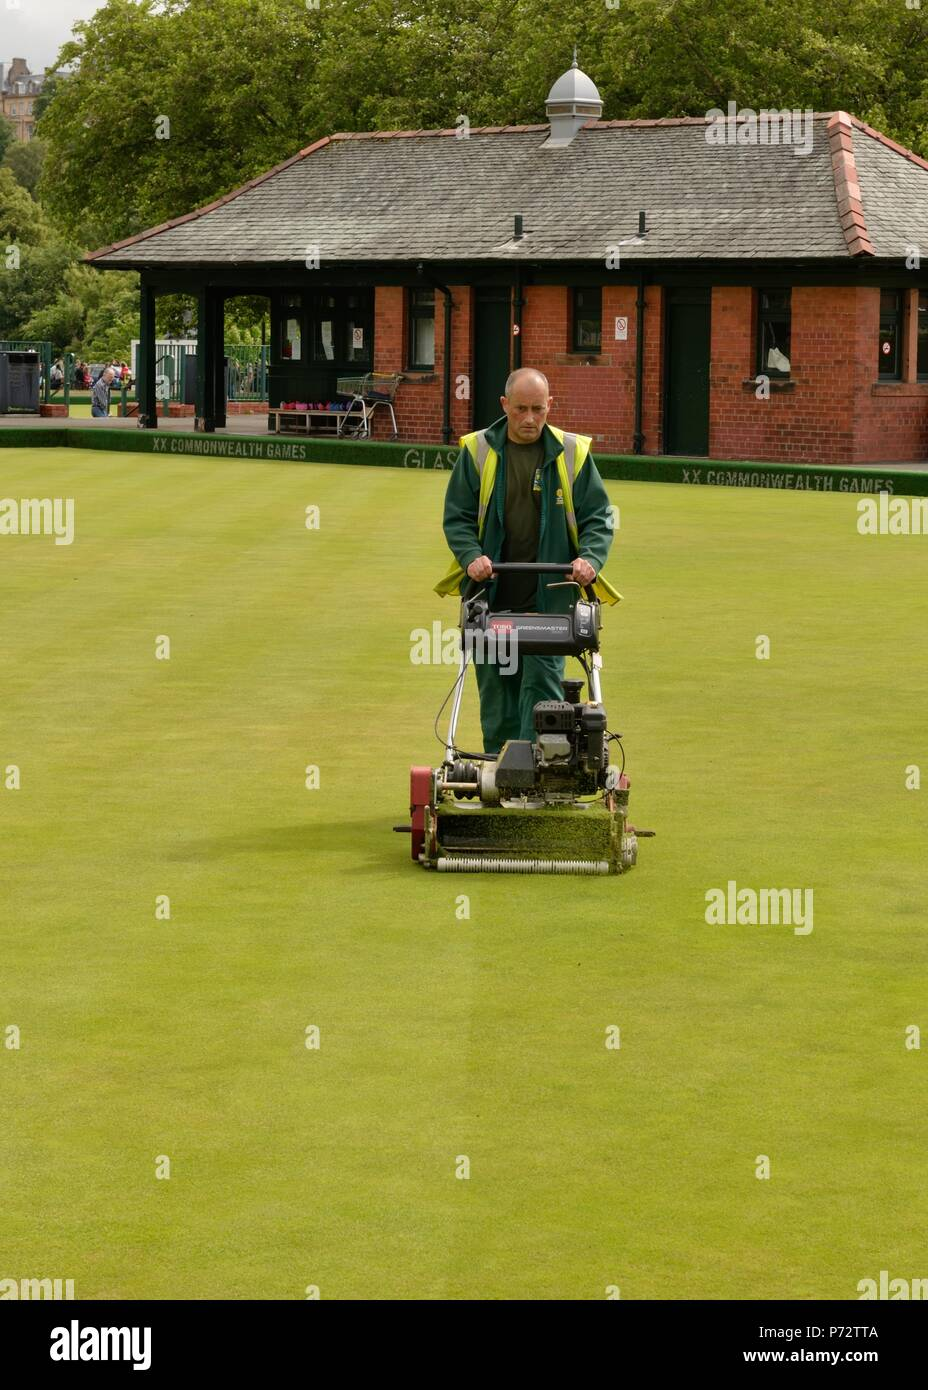 A Glasgow city council worker mowing the bowling green lawn at Kelvingrove, Glasgow, Scotland, UK - Stock Image